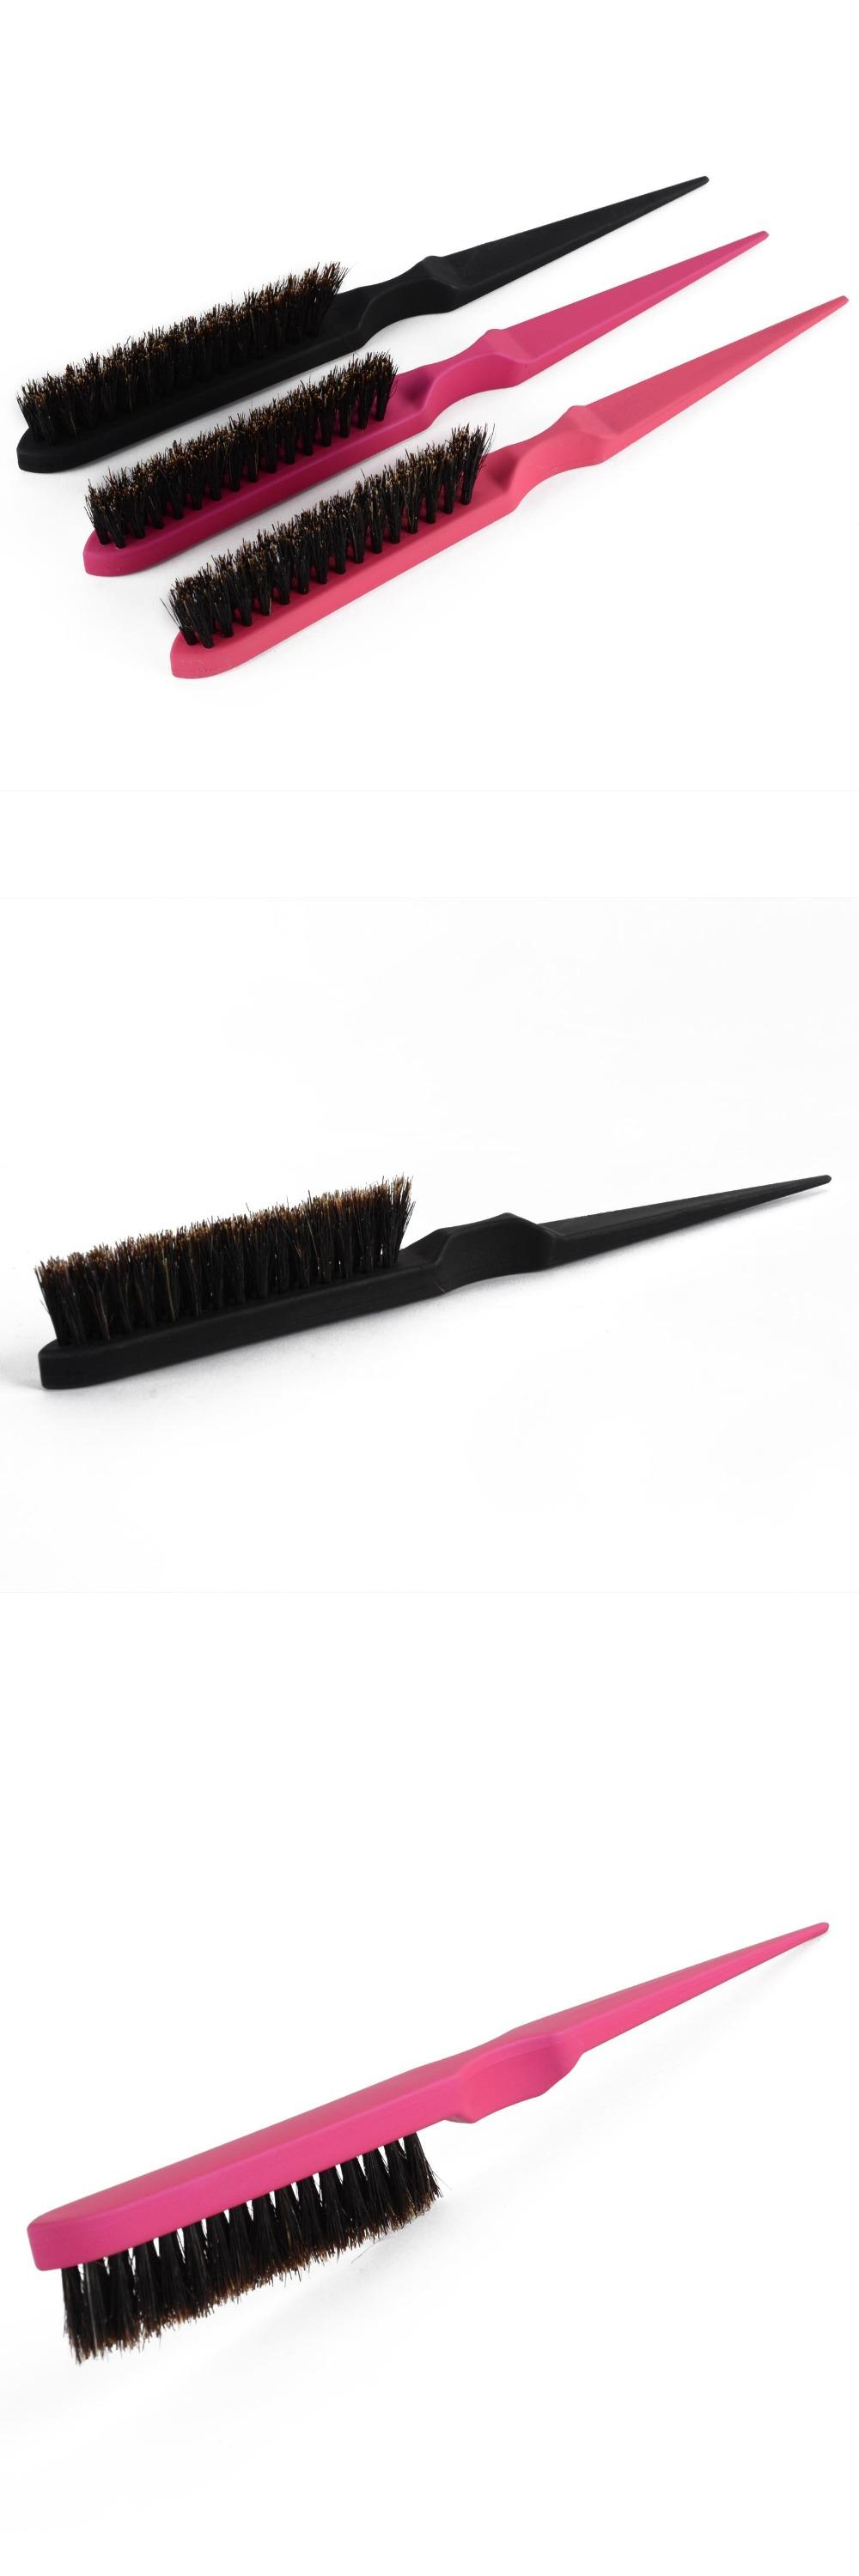 [Visit to Buy] 2016 Professional Hair Brushes Teasing Back Combing Hair Brush Slim Line Styling Tools Comb 3 Colors #Advertisement